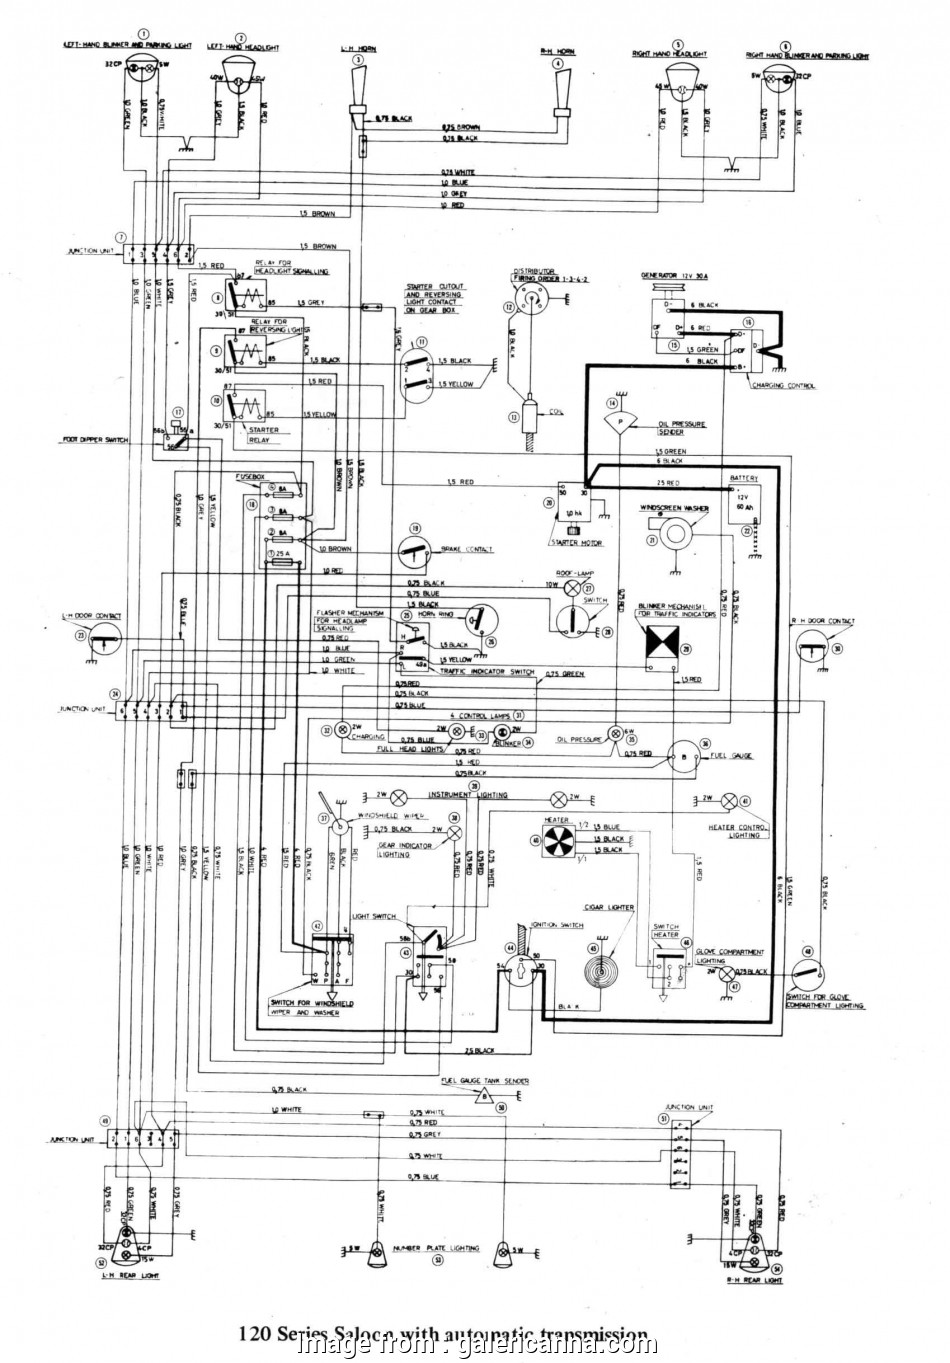 electrical cord wiring diagram Extension Cord Wiring Diagram, Wiring Diagram, Alternating Relay Best Electrical Wire Diagram Best Sw Electrical Cord Wiring Diagram Nice Extension Cord Wiring Diagram, Wiring Diagram, Alternating Relay Best Electrical Wire Diagram Best Sw Solutions